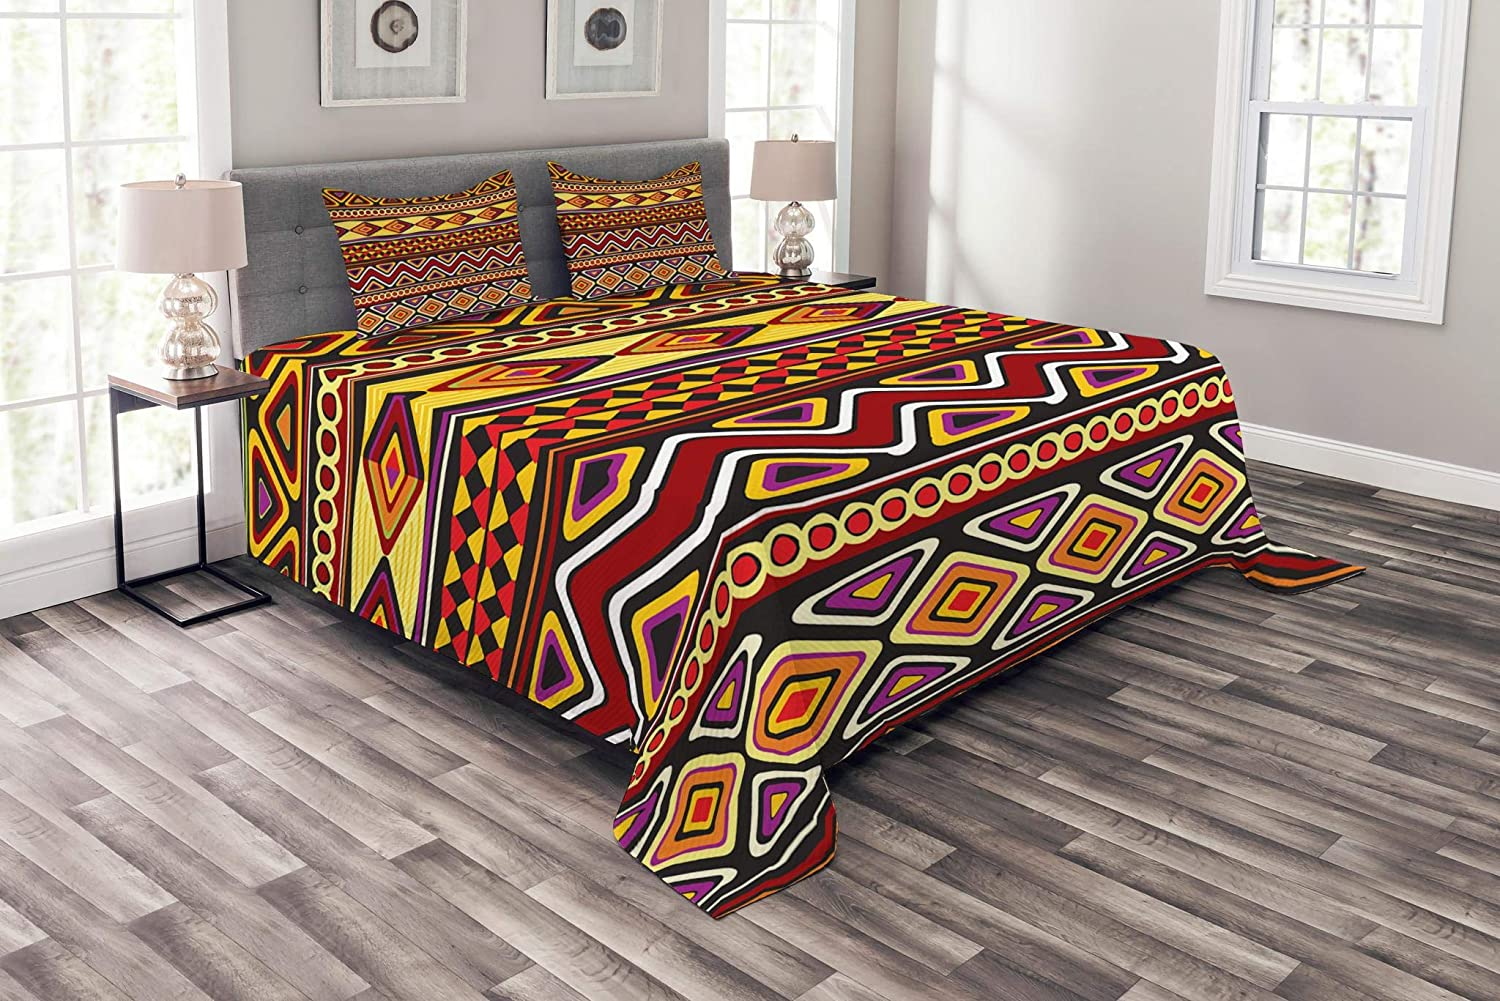 Lunarable African Bedspread, Oriental Patterns with Geometric Ornate Forms and Antique Shapes Retro Art, Decorative Quilted 3 Piece Coverlet Set with 2 Pillow Shams, Queen Size, Yellow Brown